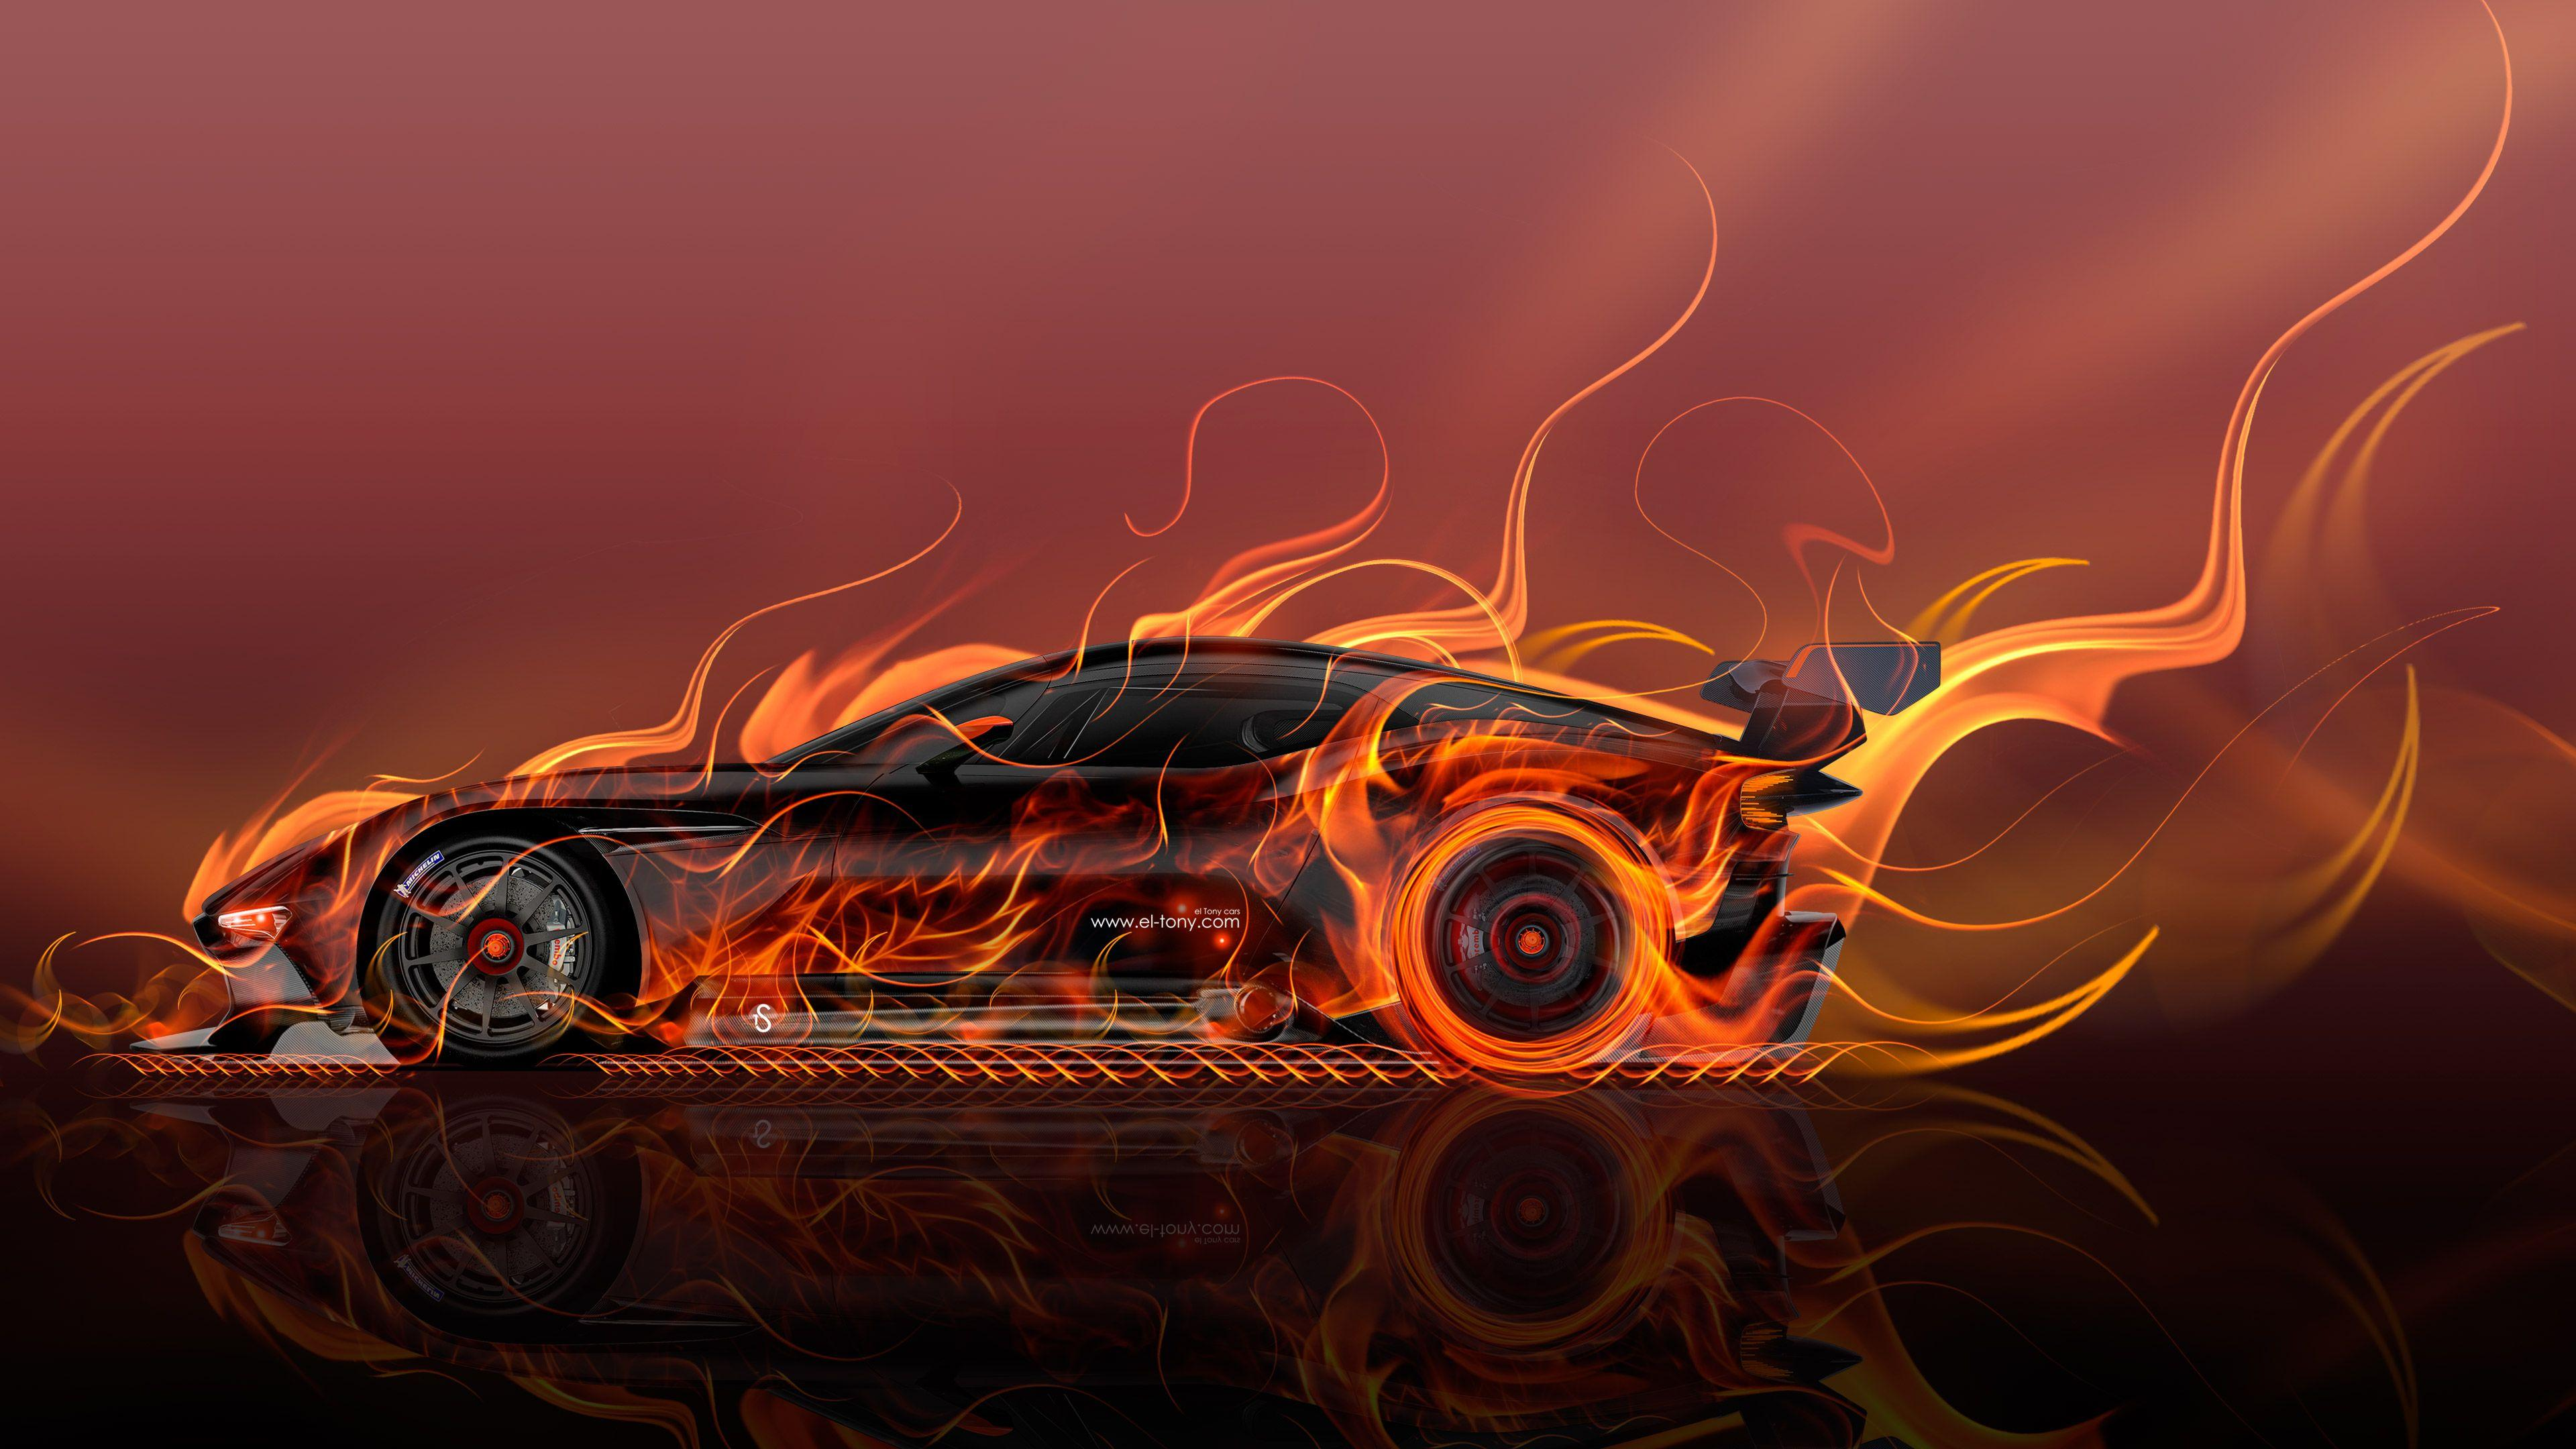 Fire Cars Wallpapers - Wallpaper Cave